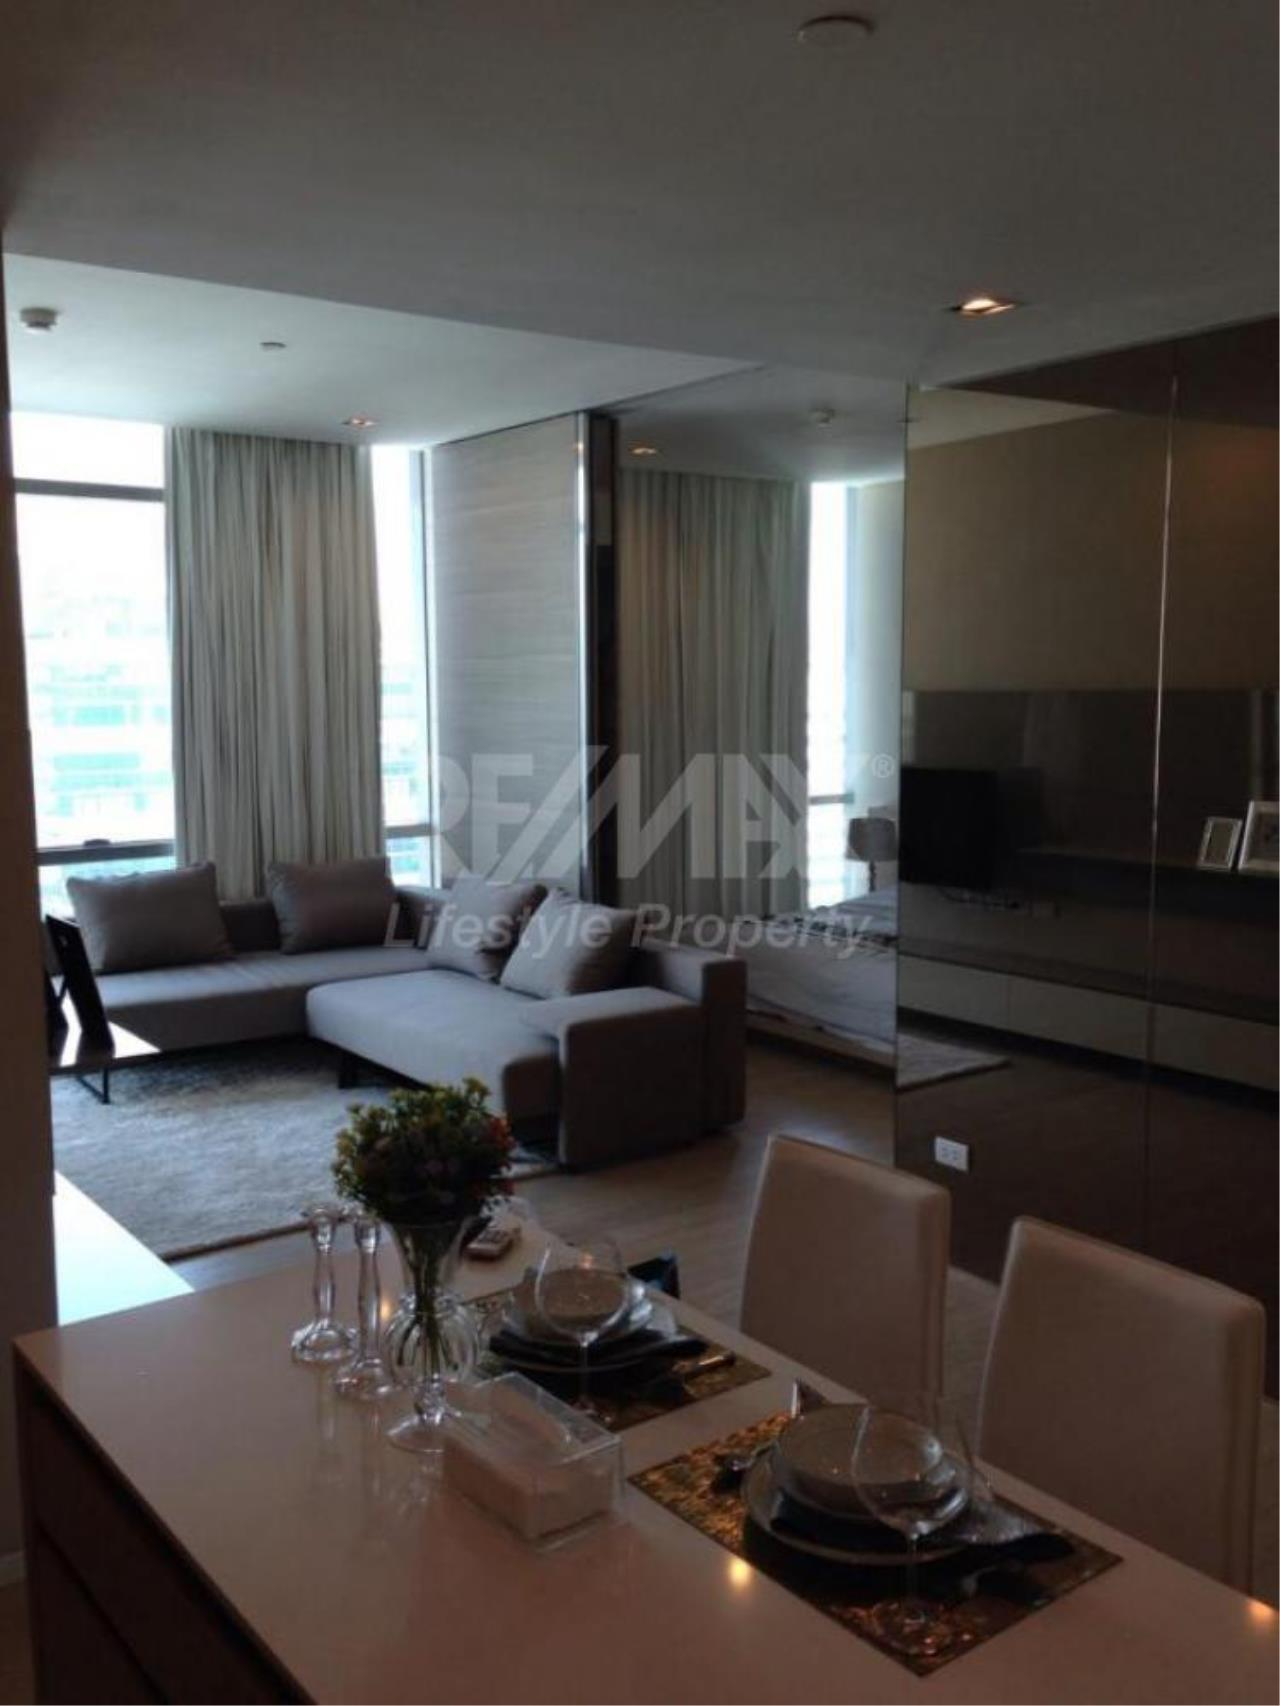 RE/MAX LifeStyle Property Agency's The Room Sukhumvit 21 1